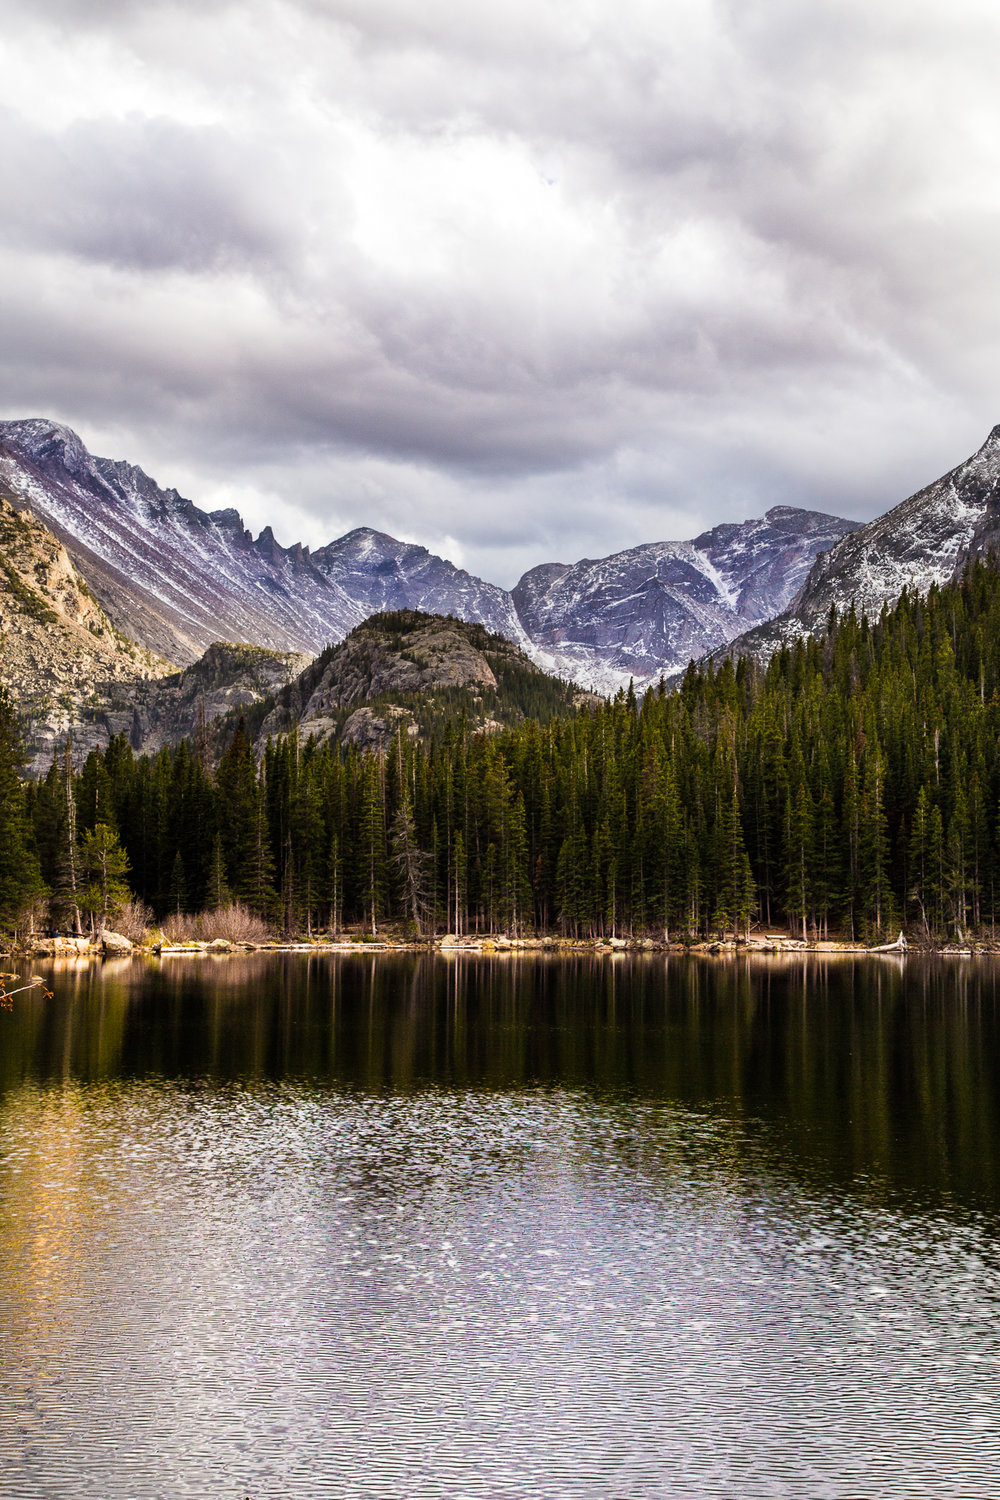 Wes_Ryan_Photography-rmnp_3089.jpg